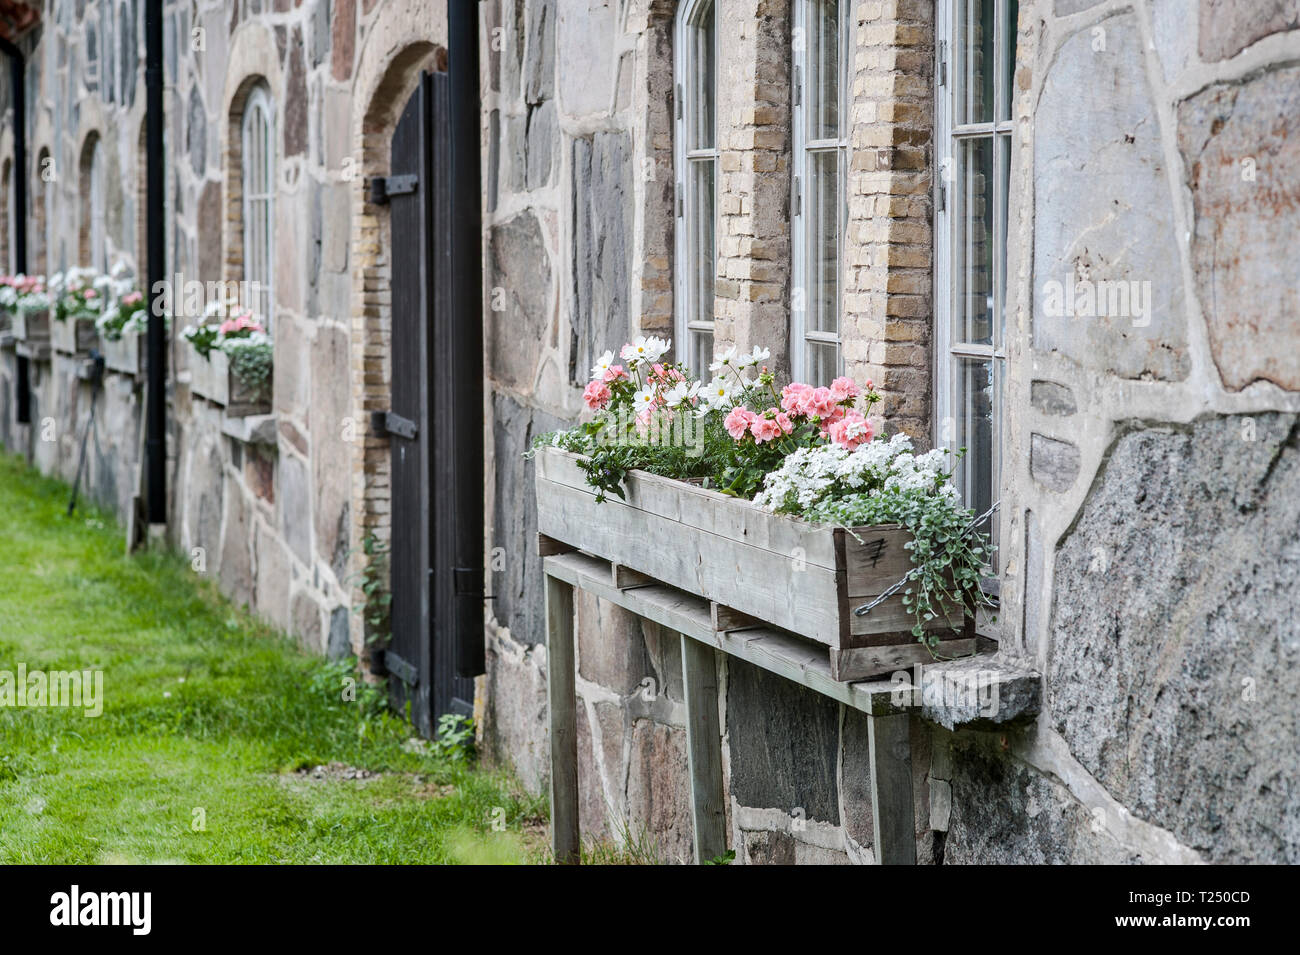 Wooden Window Flower Boxes With Pink Pelargonium And White Flowers Adorning Old Fashioned Stone Barn Stock Photo Alamy